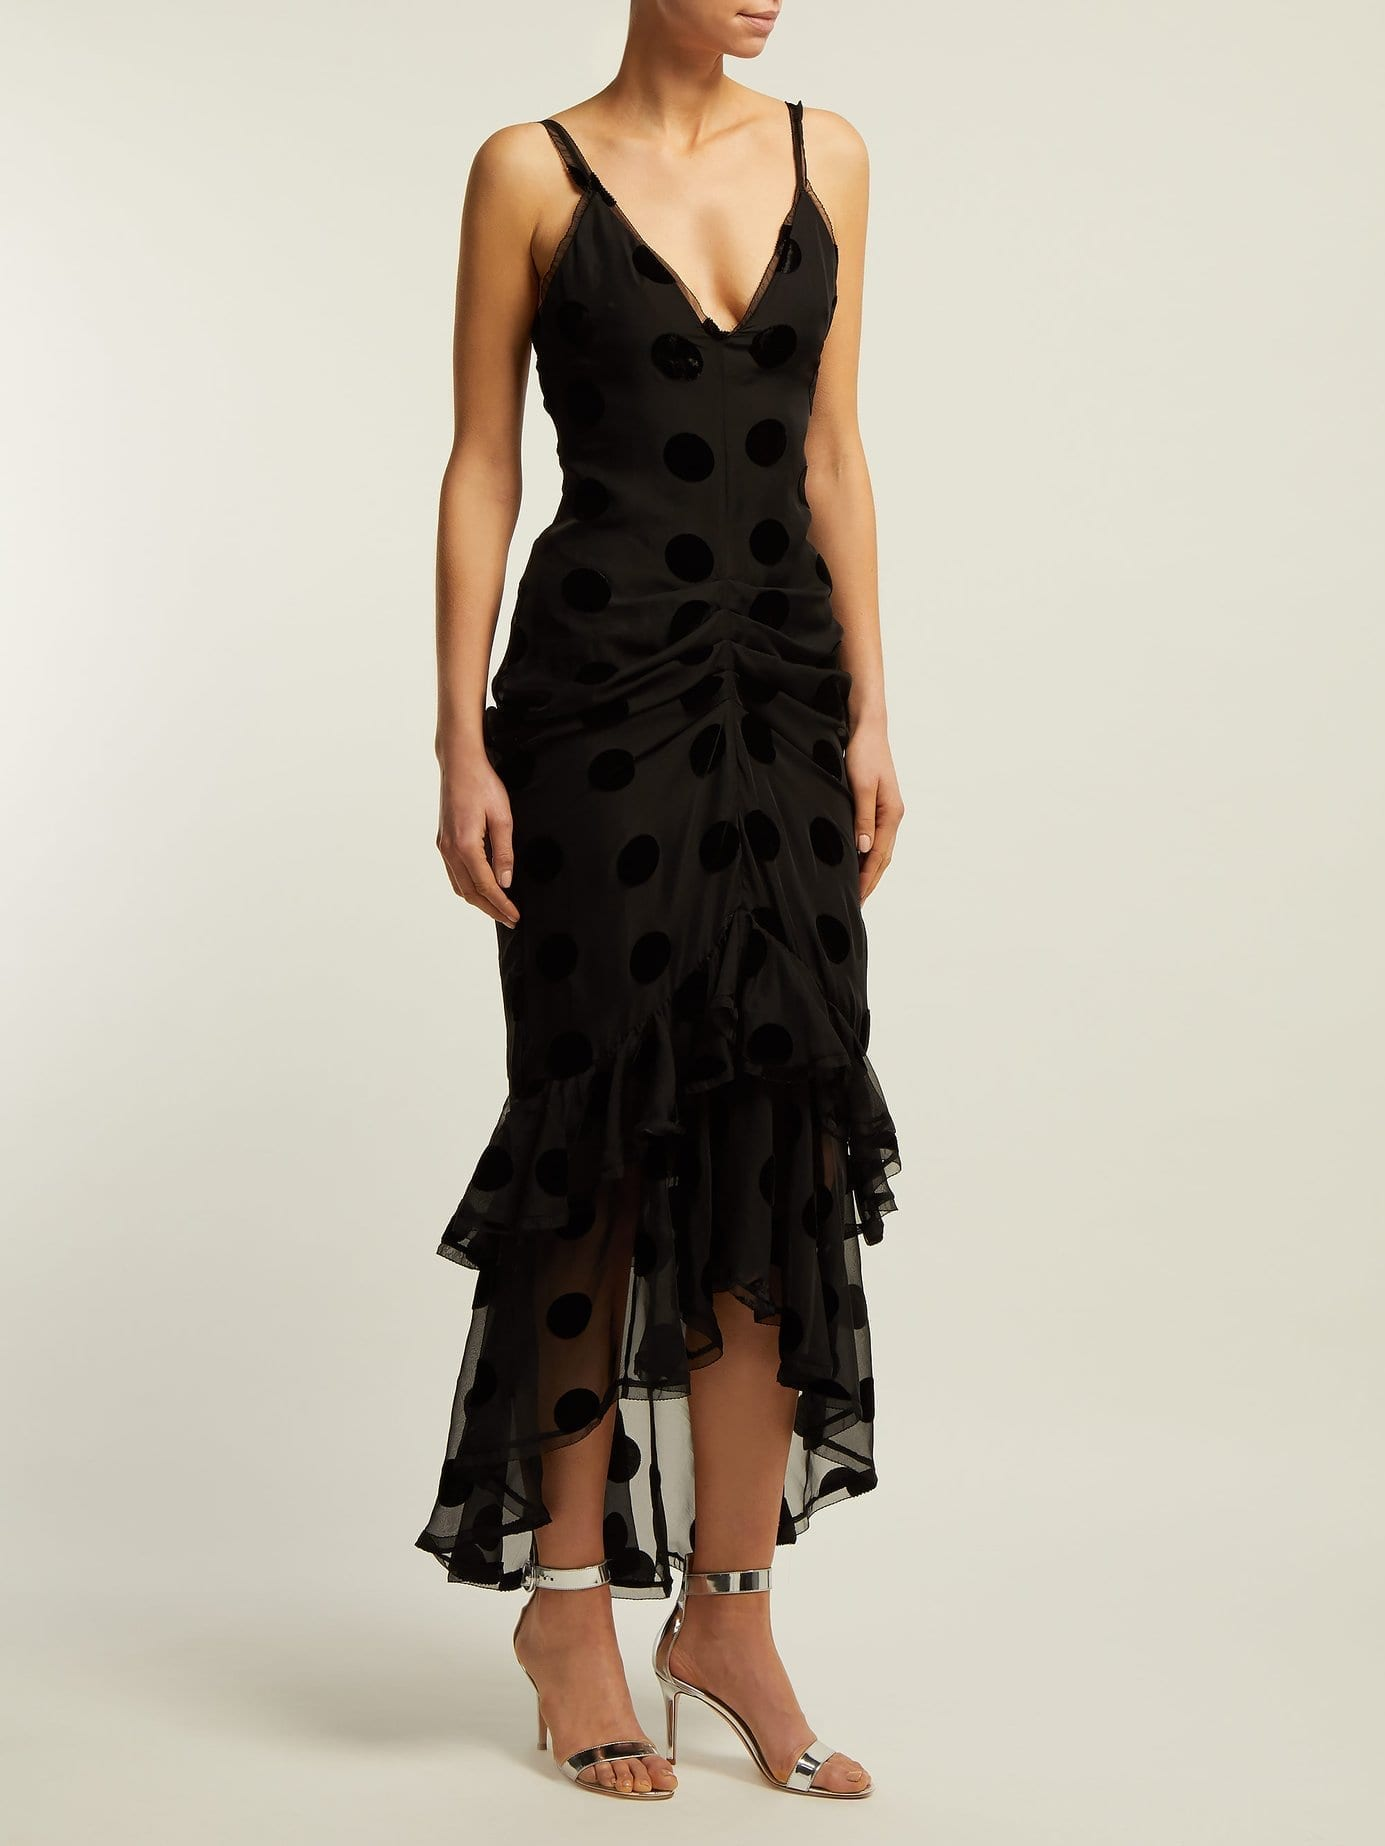 MARIA LUCIA HOHAN Skylar Polka-dot Ruched Black Dress